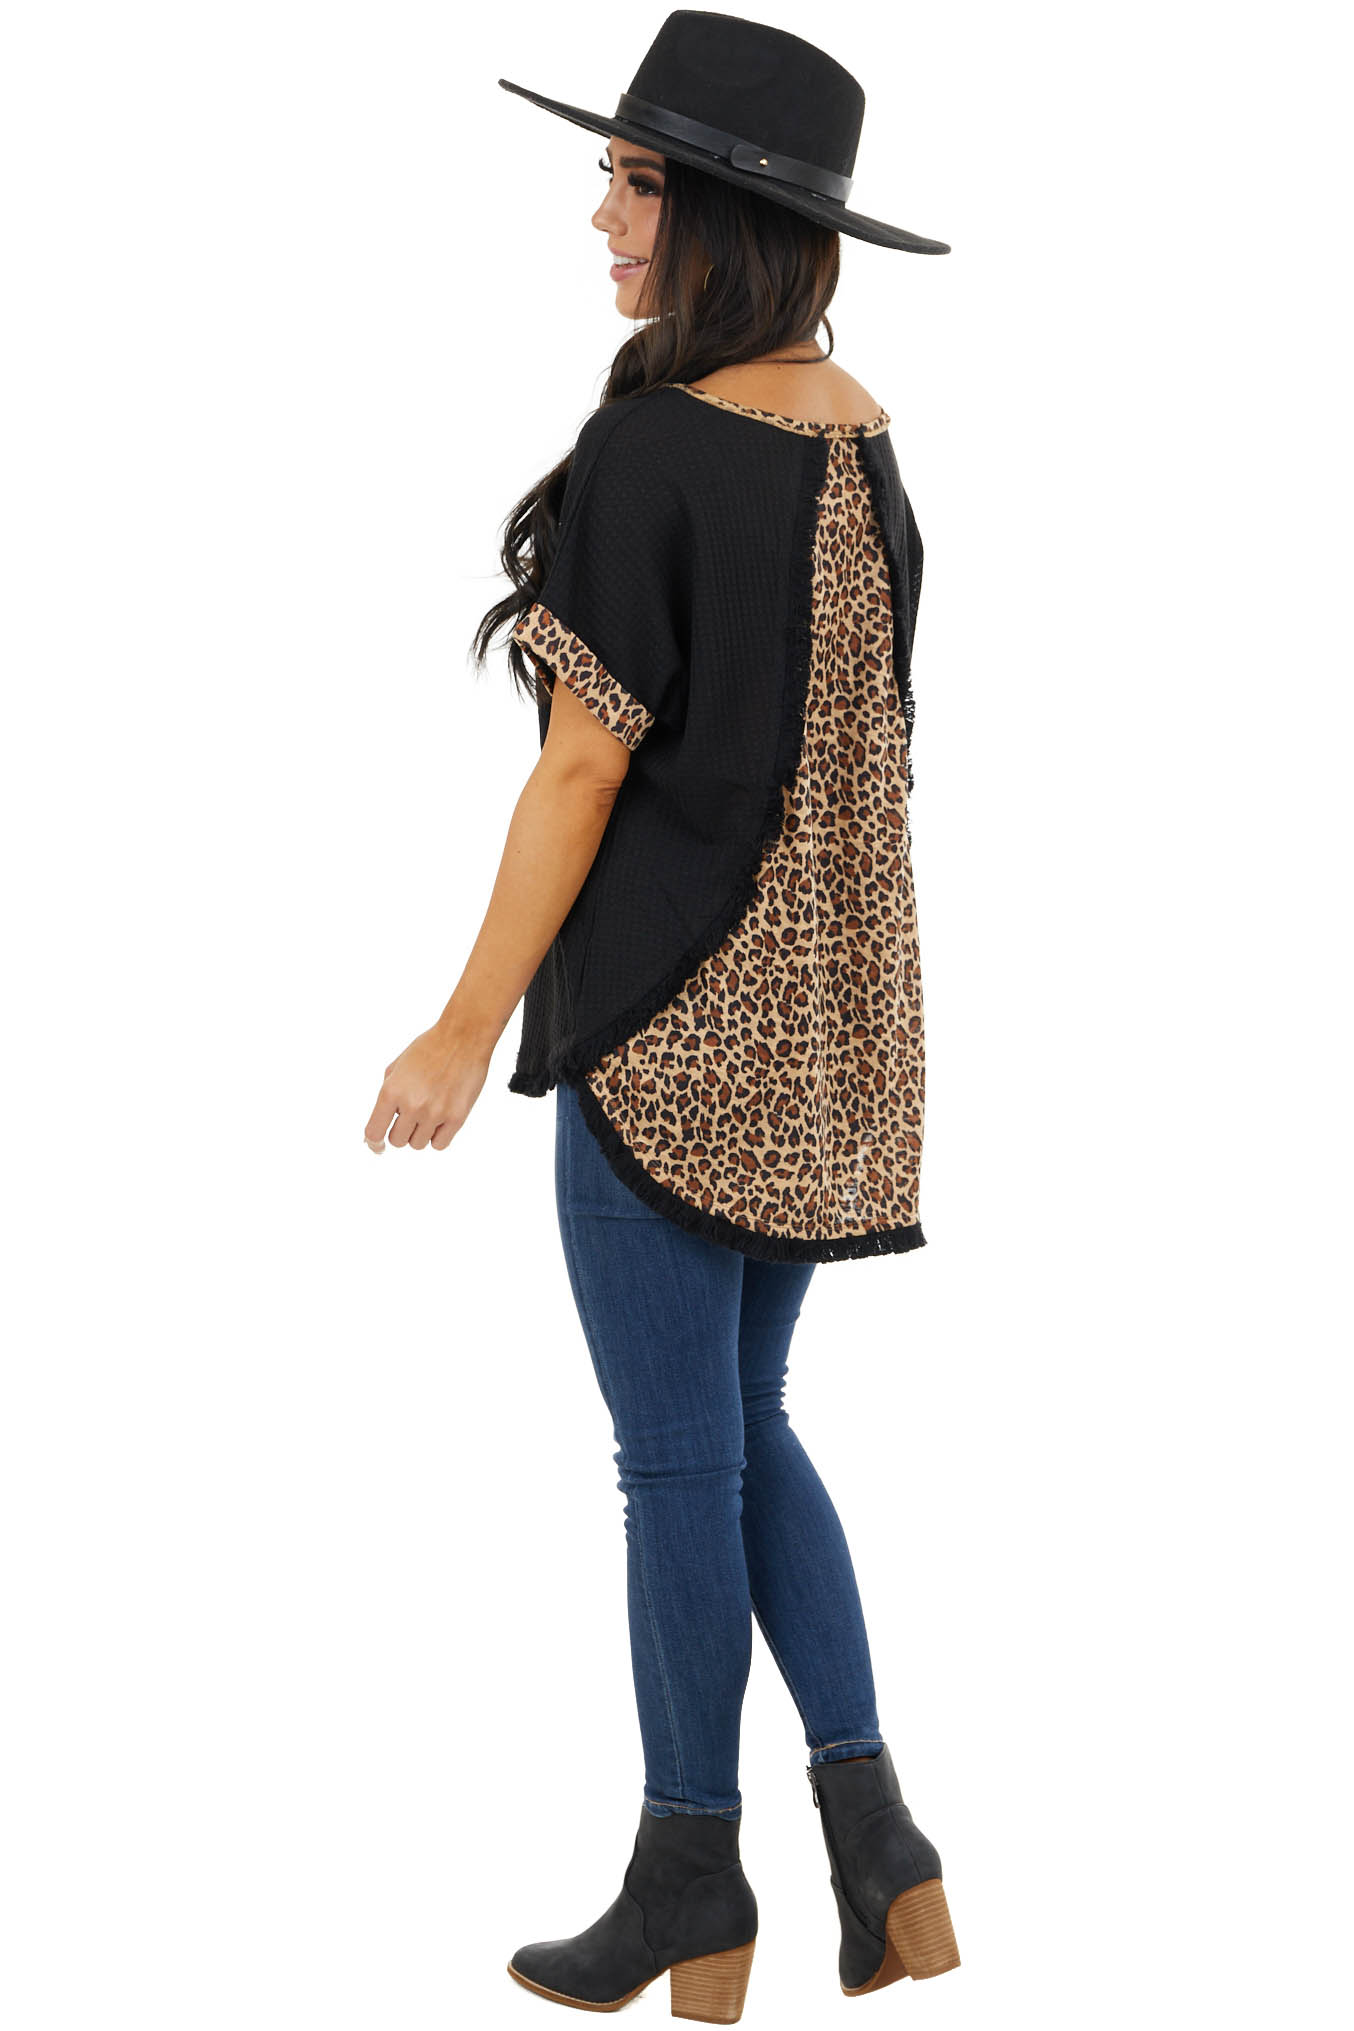 Black Waffle Knit Top with Leopard Print and Fringe Details